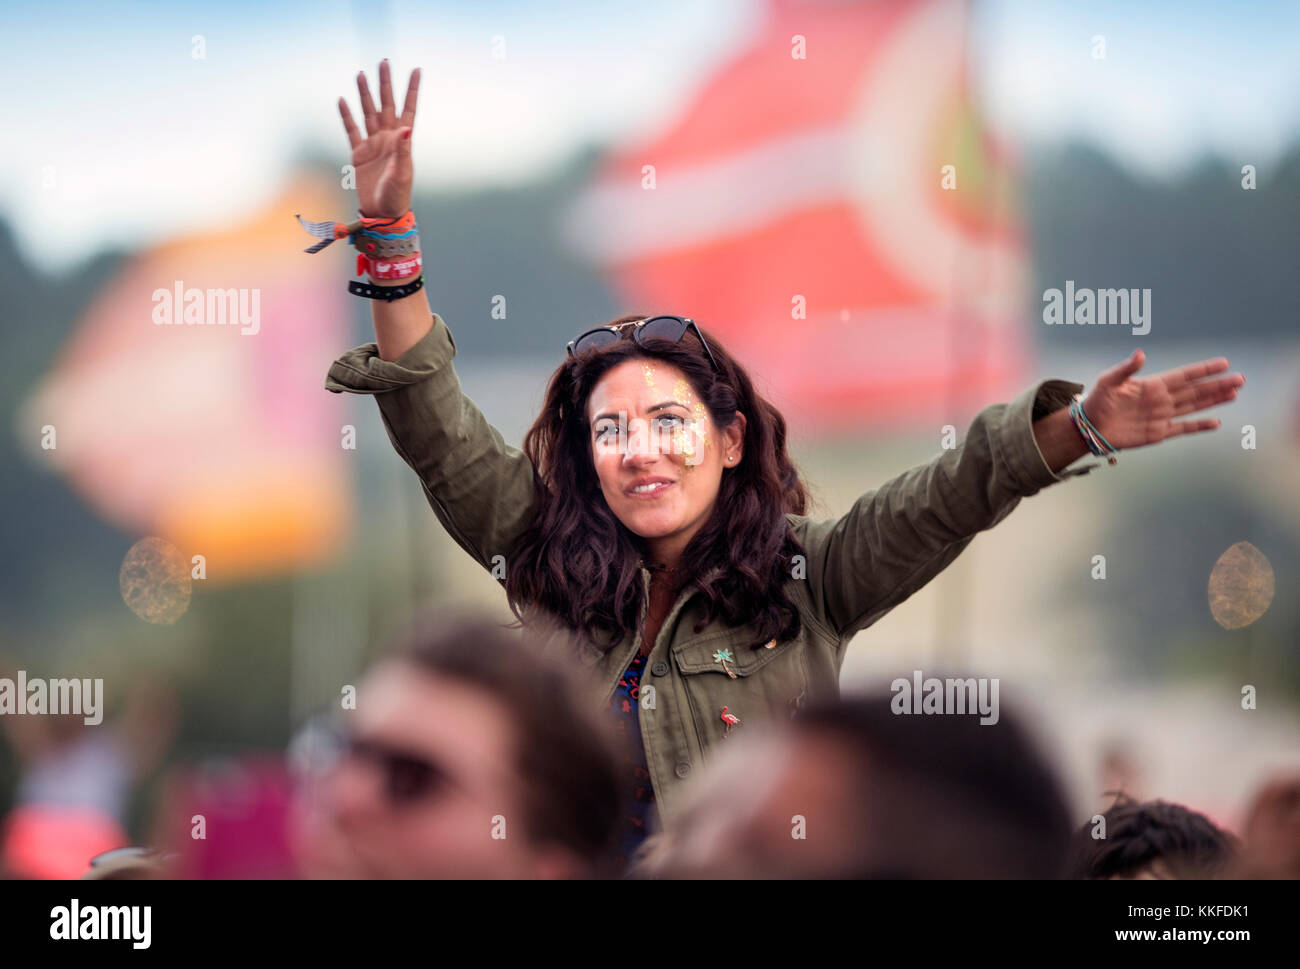 A George Ezra fan in the crowd at the Other Stage at Glastonbury 2017 - Stock Image